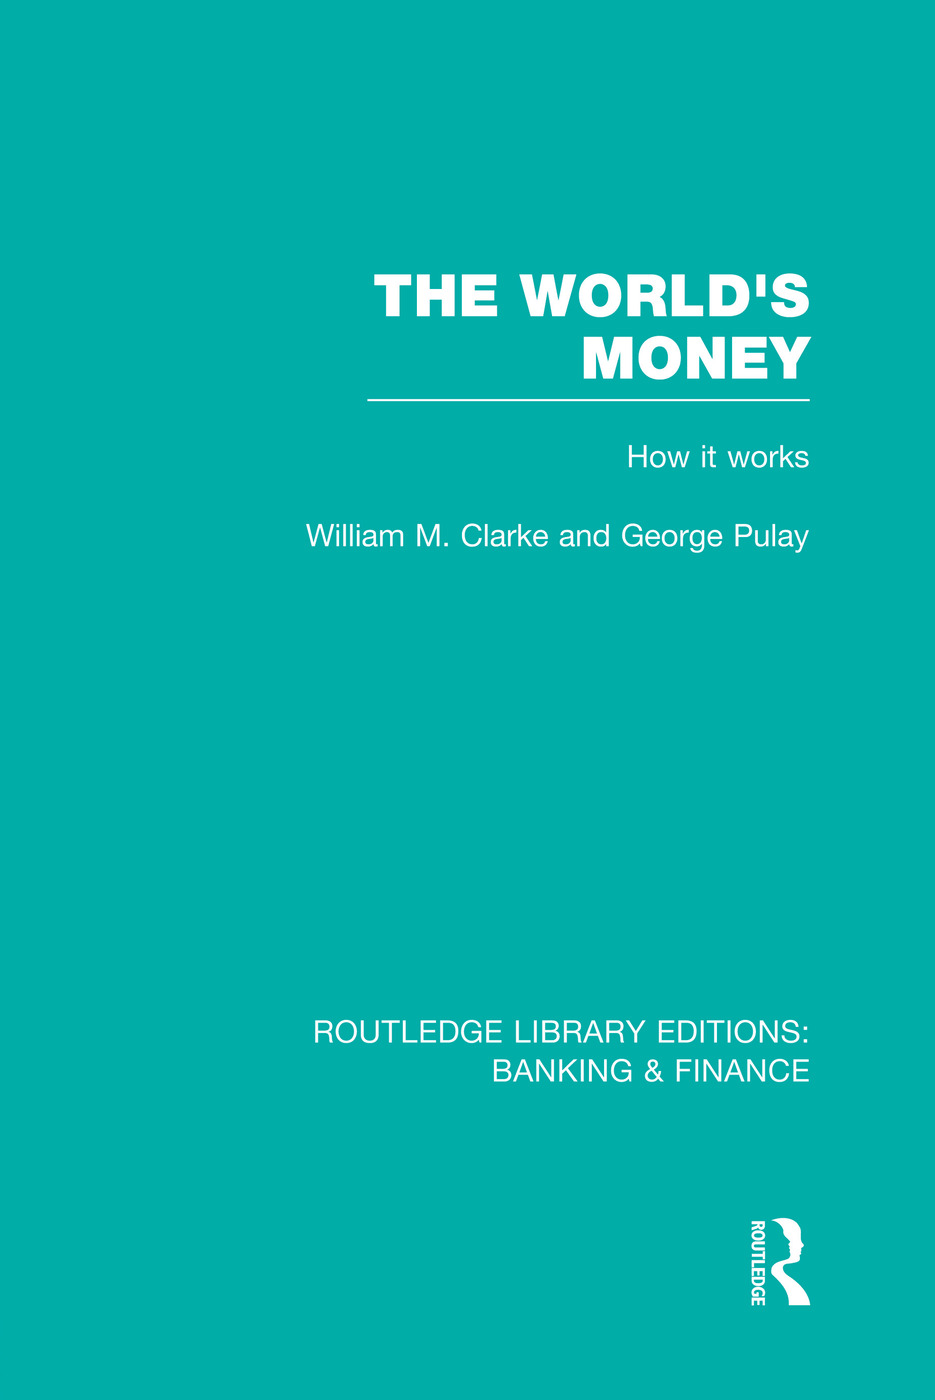 The World's Money (RLE: Banking & Finance)